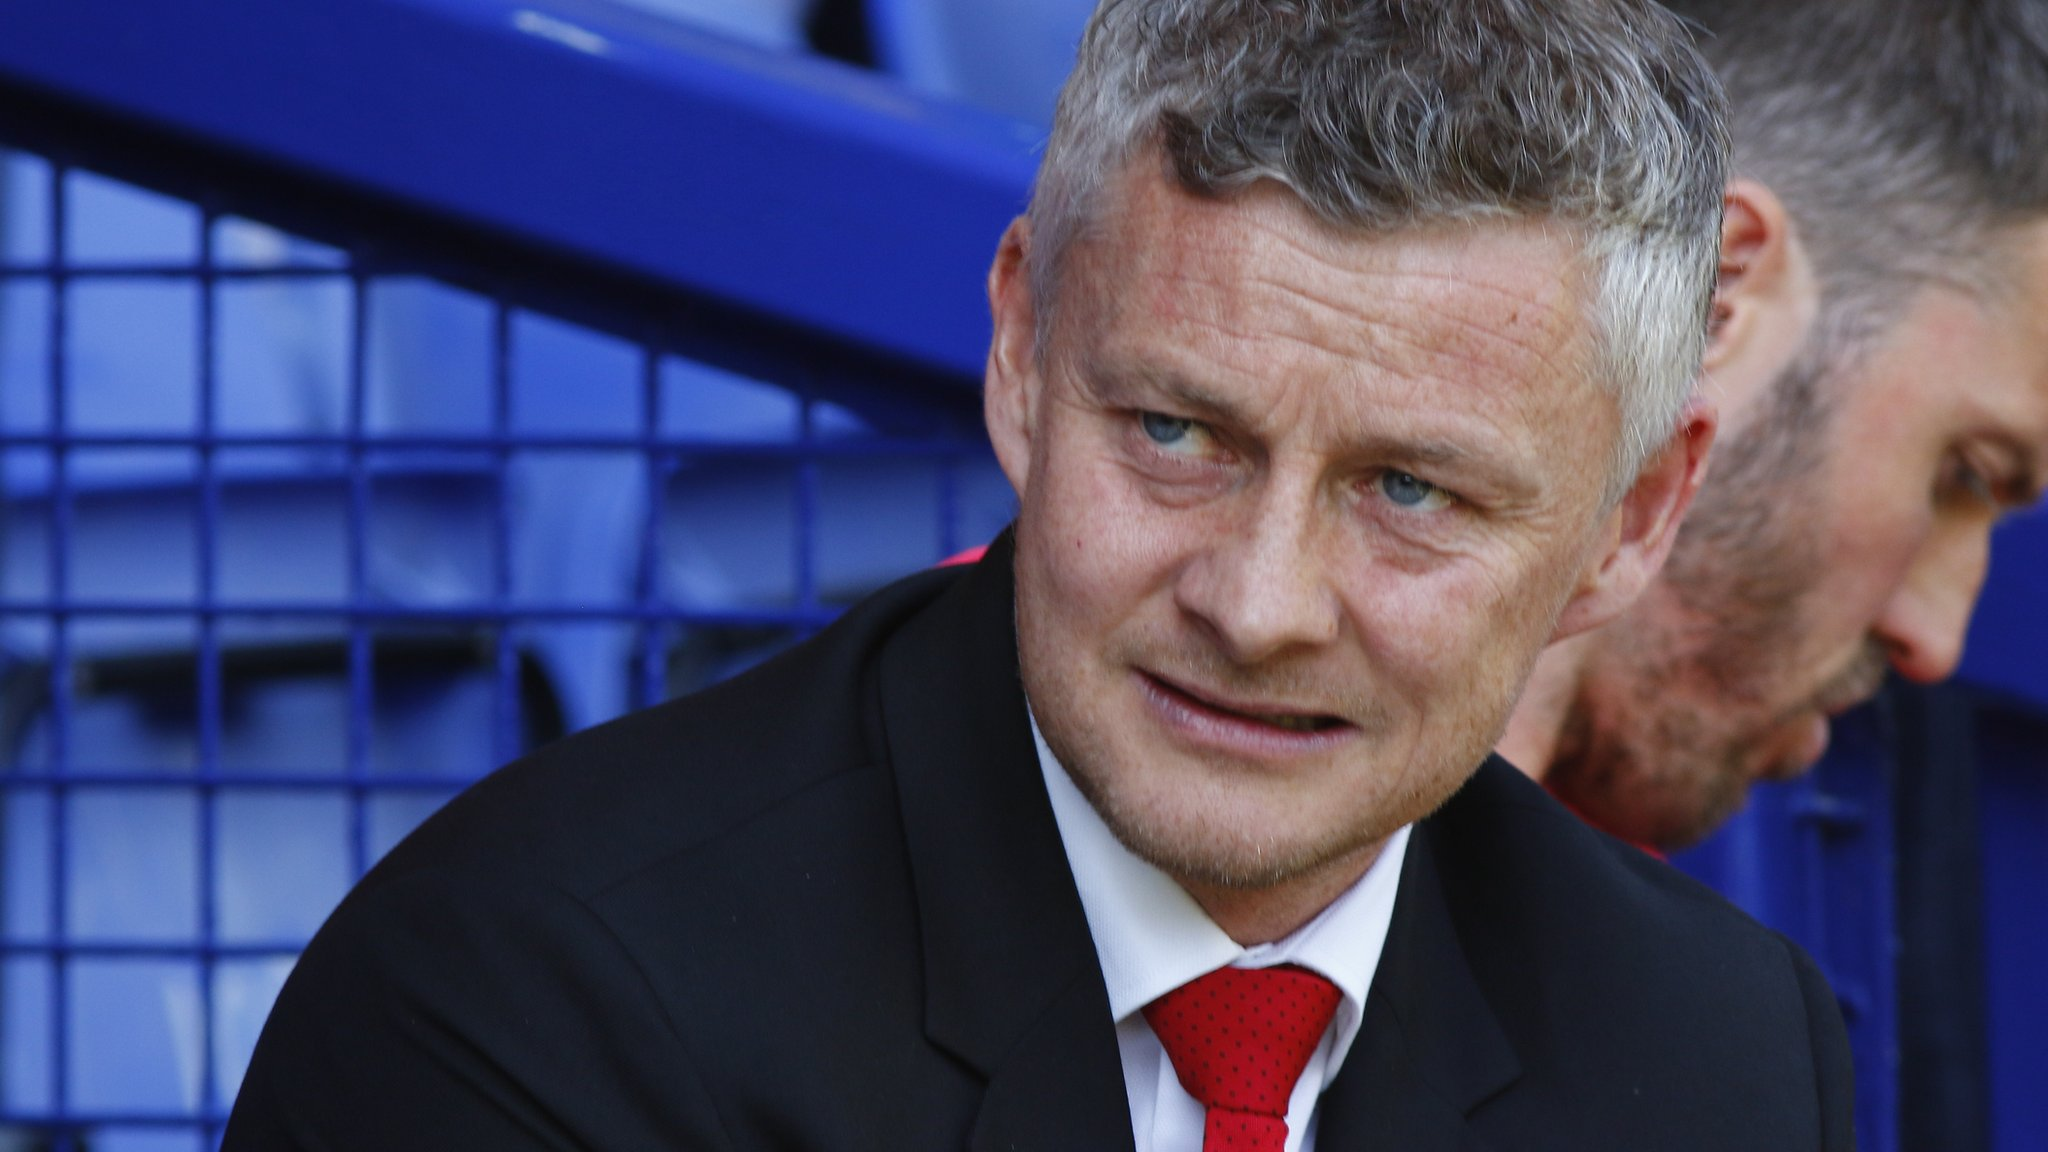 Ole Gunnar Solskjaer says his players have 'Manchester United DNA'